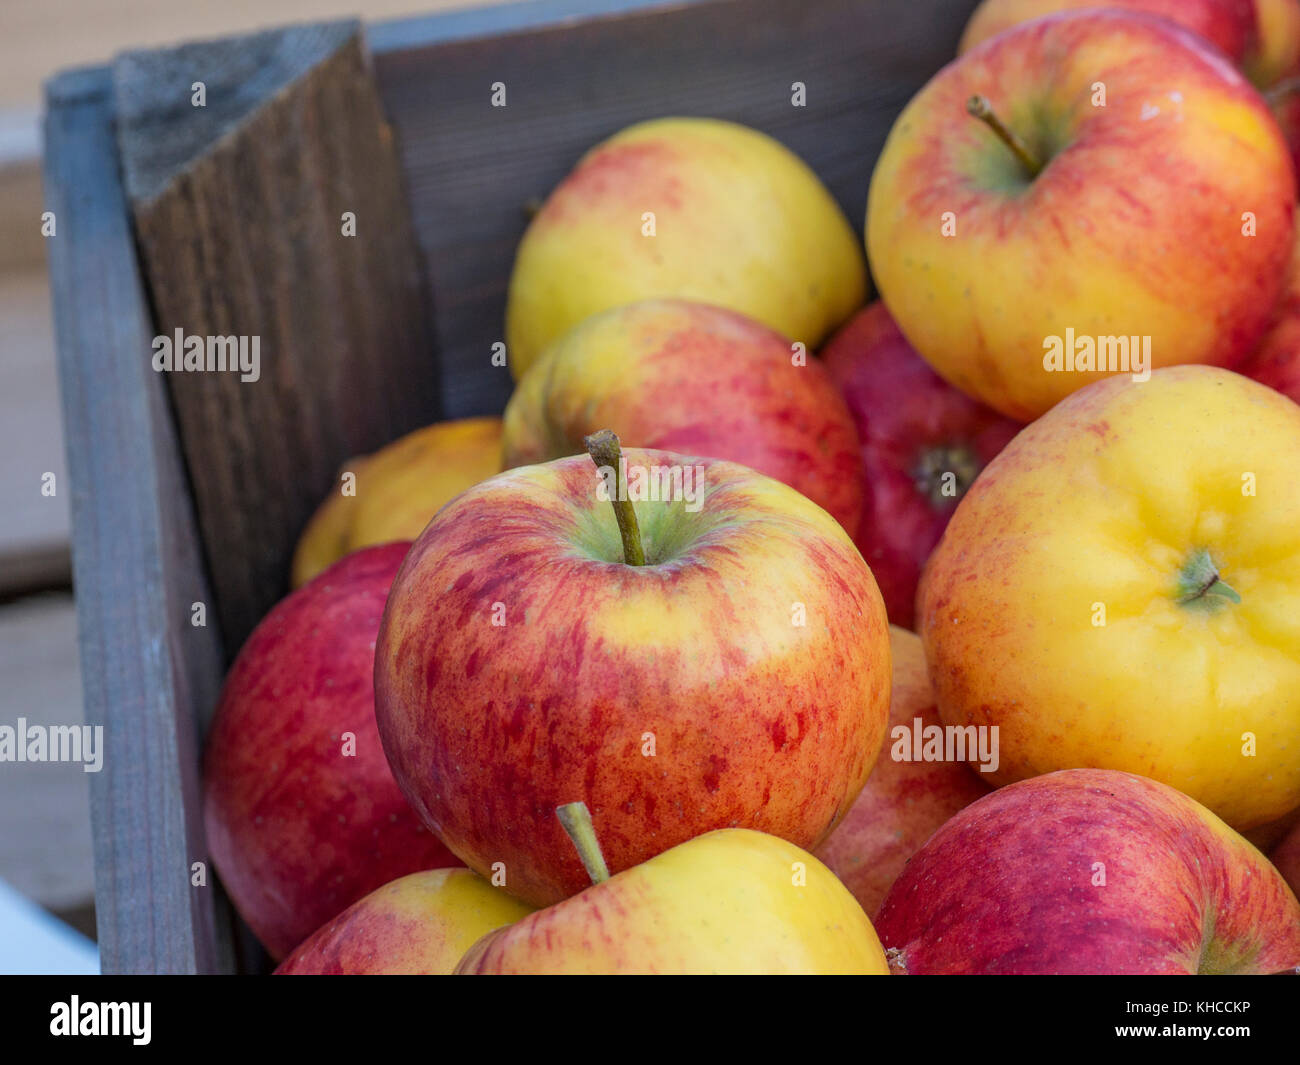 Topaz Stock Photos & Topaz Stock Images - Alamy